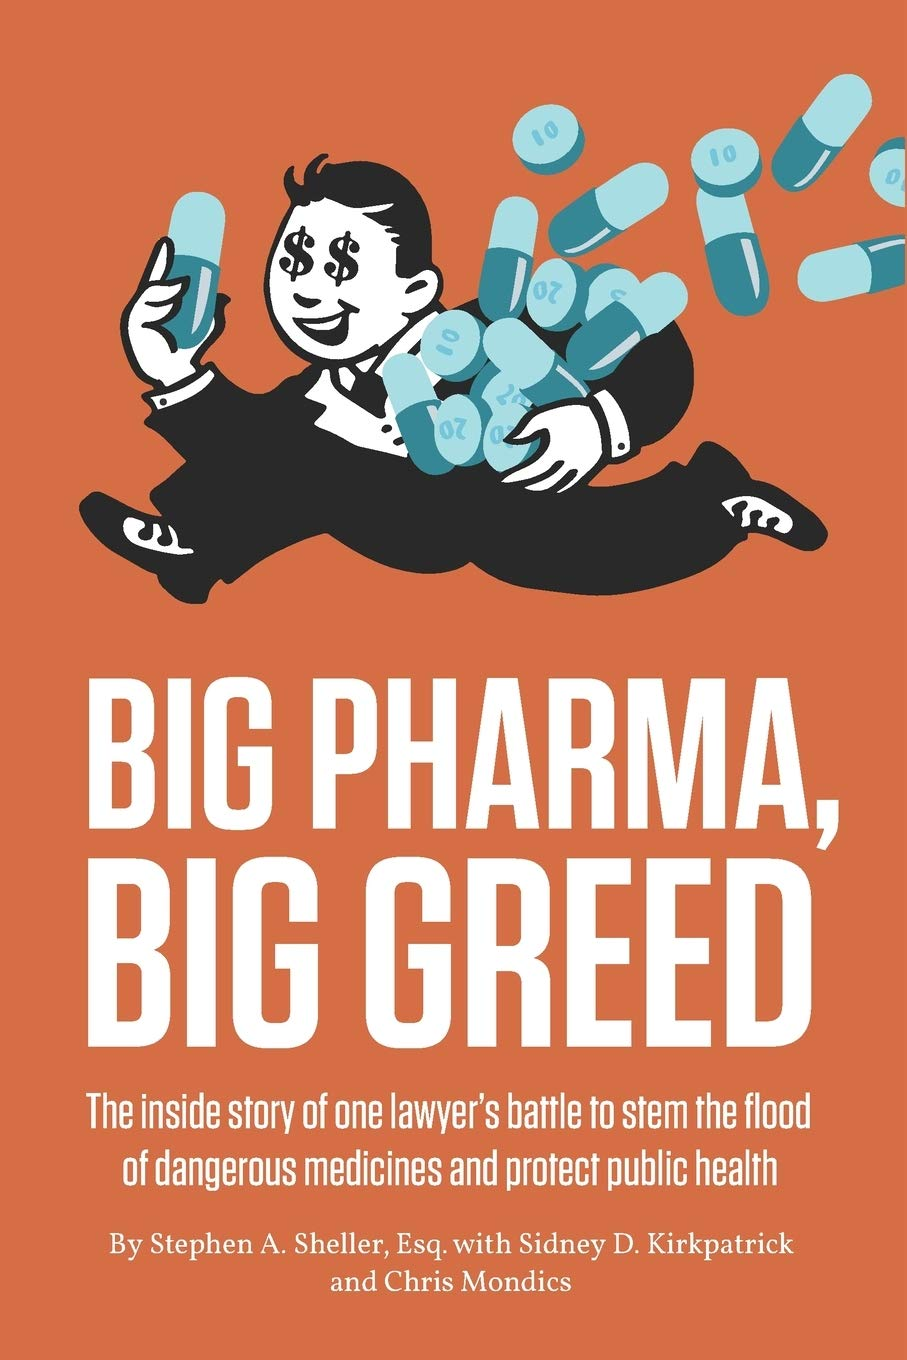 Amazon.com: Big Pharma, Big Greed: The inside story of one lawyer's battle  to stem the flood of dangerous medicines and protect public health  (9781947492257): Sheller, Stephen, Kirkpatrick, Sidney, Mondics,  Christopher: Books